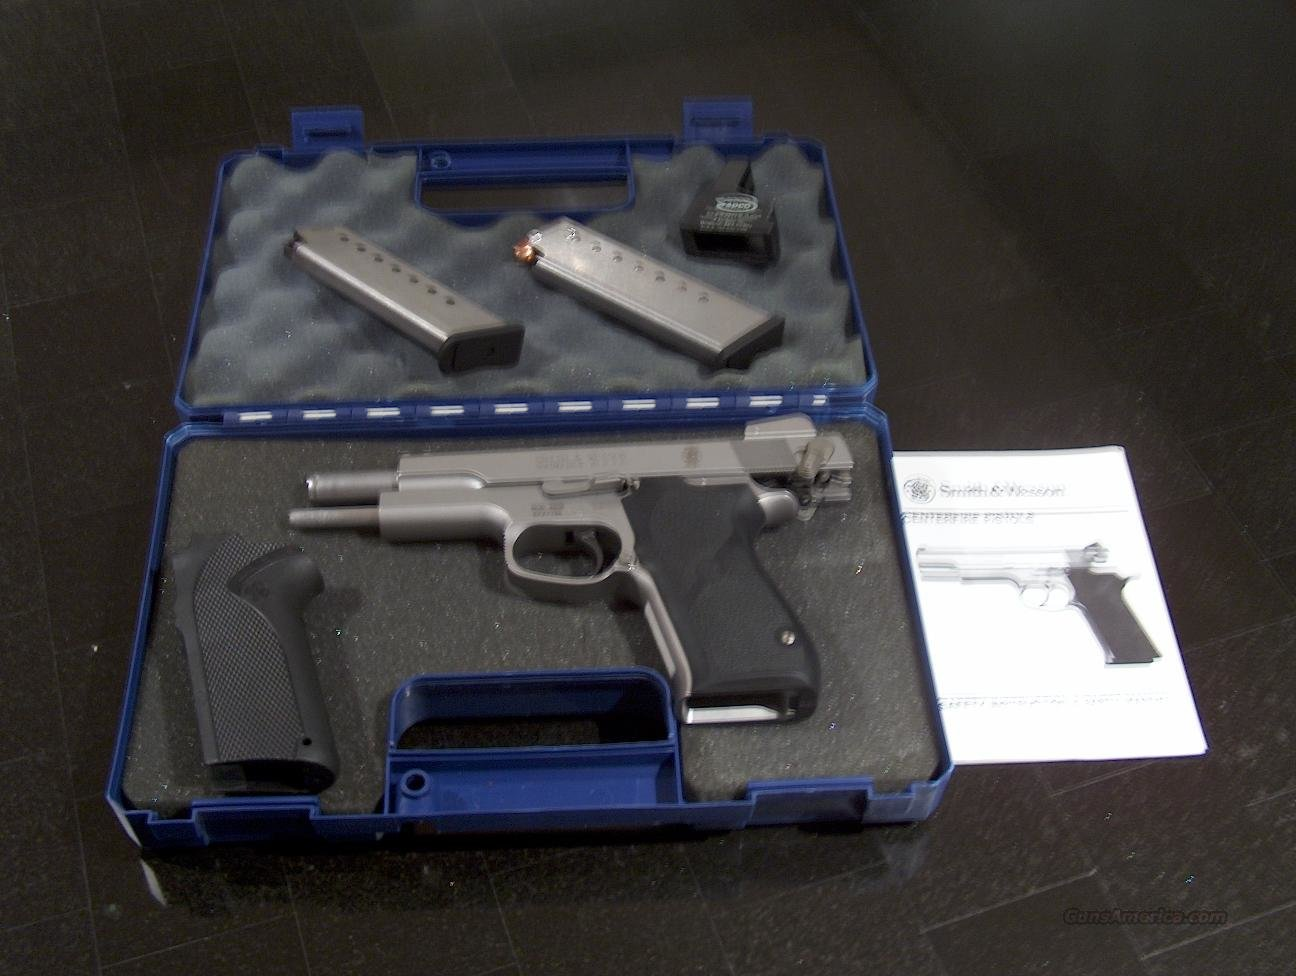 Smith & Wesson S&W 4506 4506-1 .45 ACP 45ACP - * Sale Pending *  Guns > Pistols > Smith & Wesson Pistols - Autos > Steel Frame